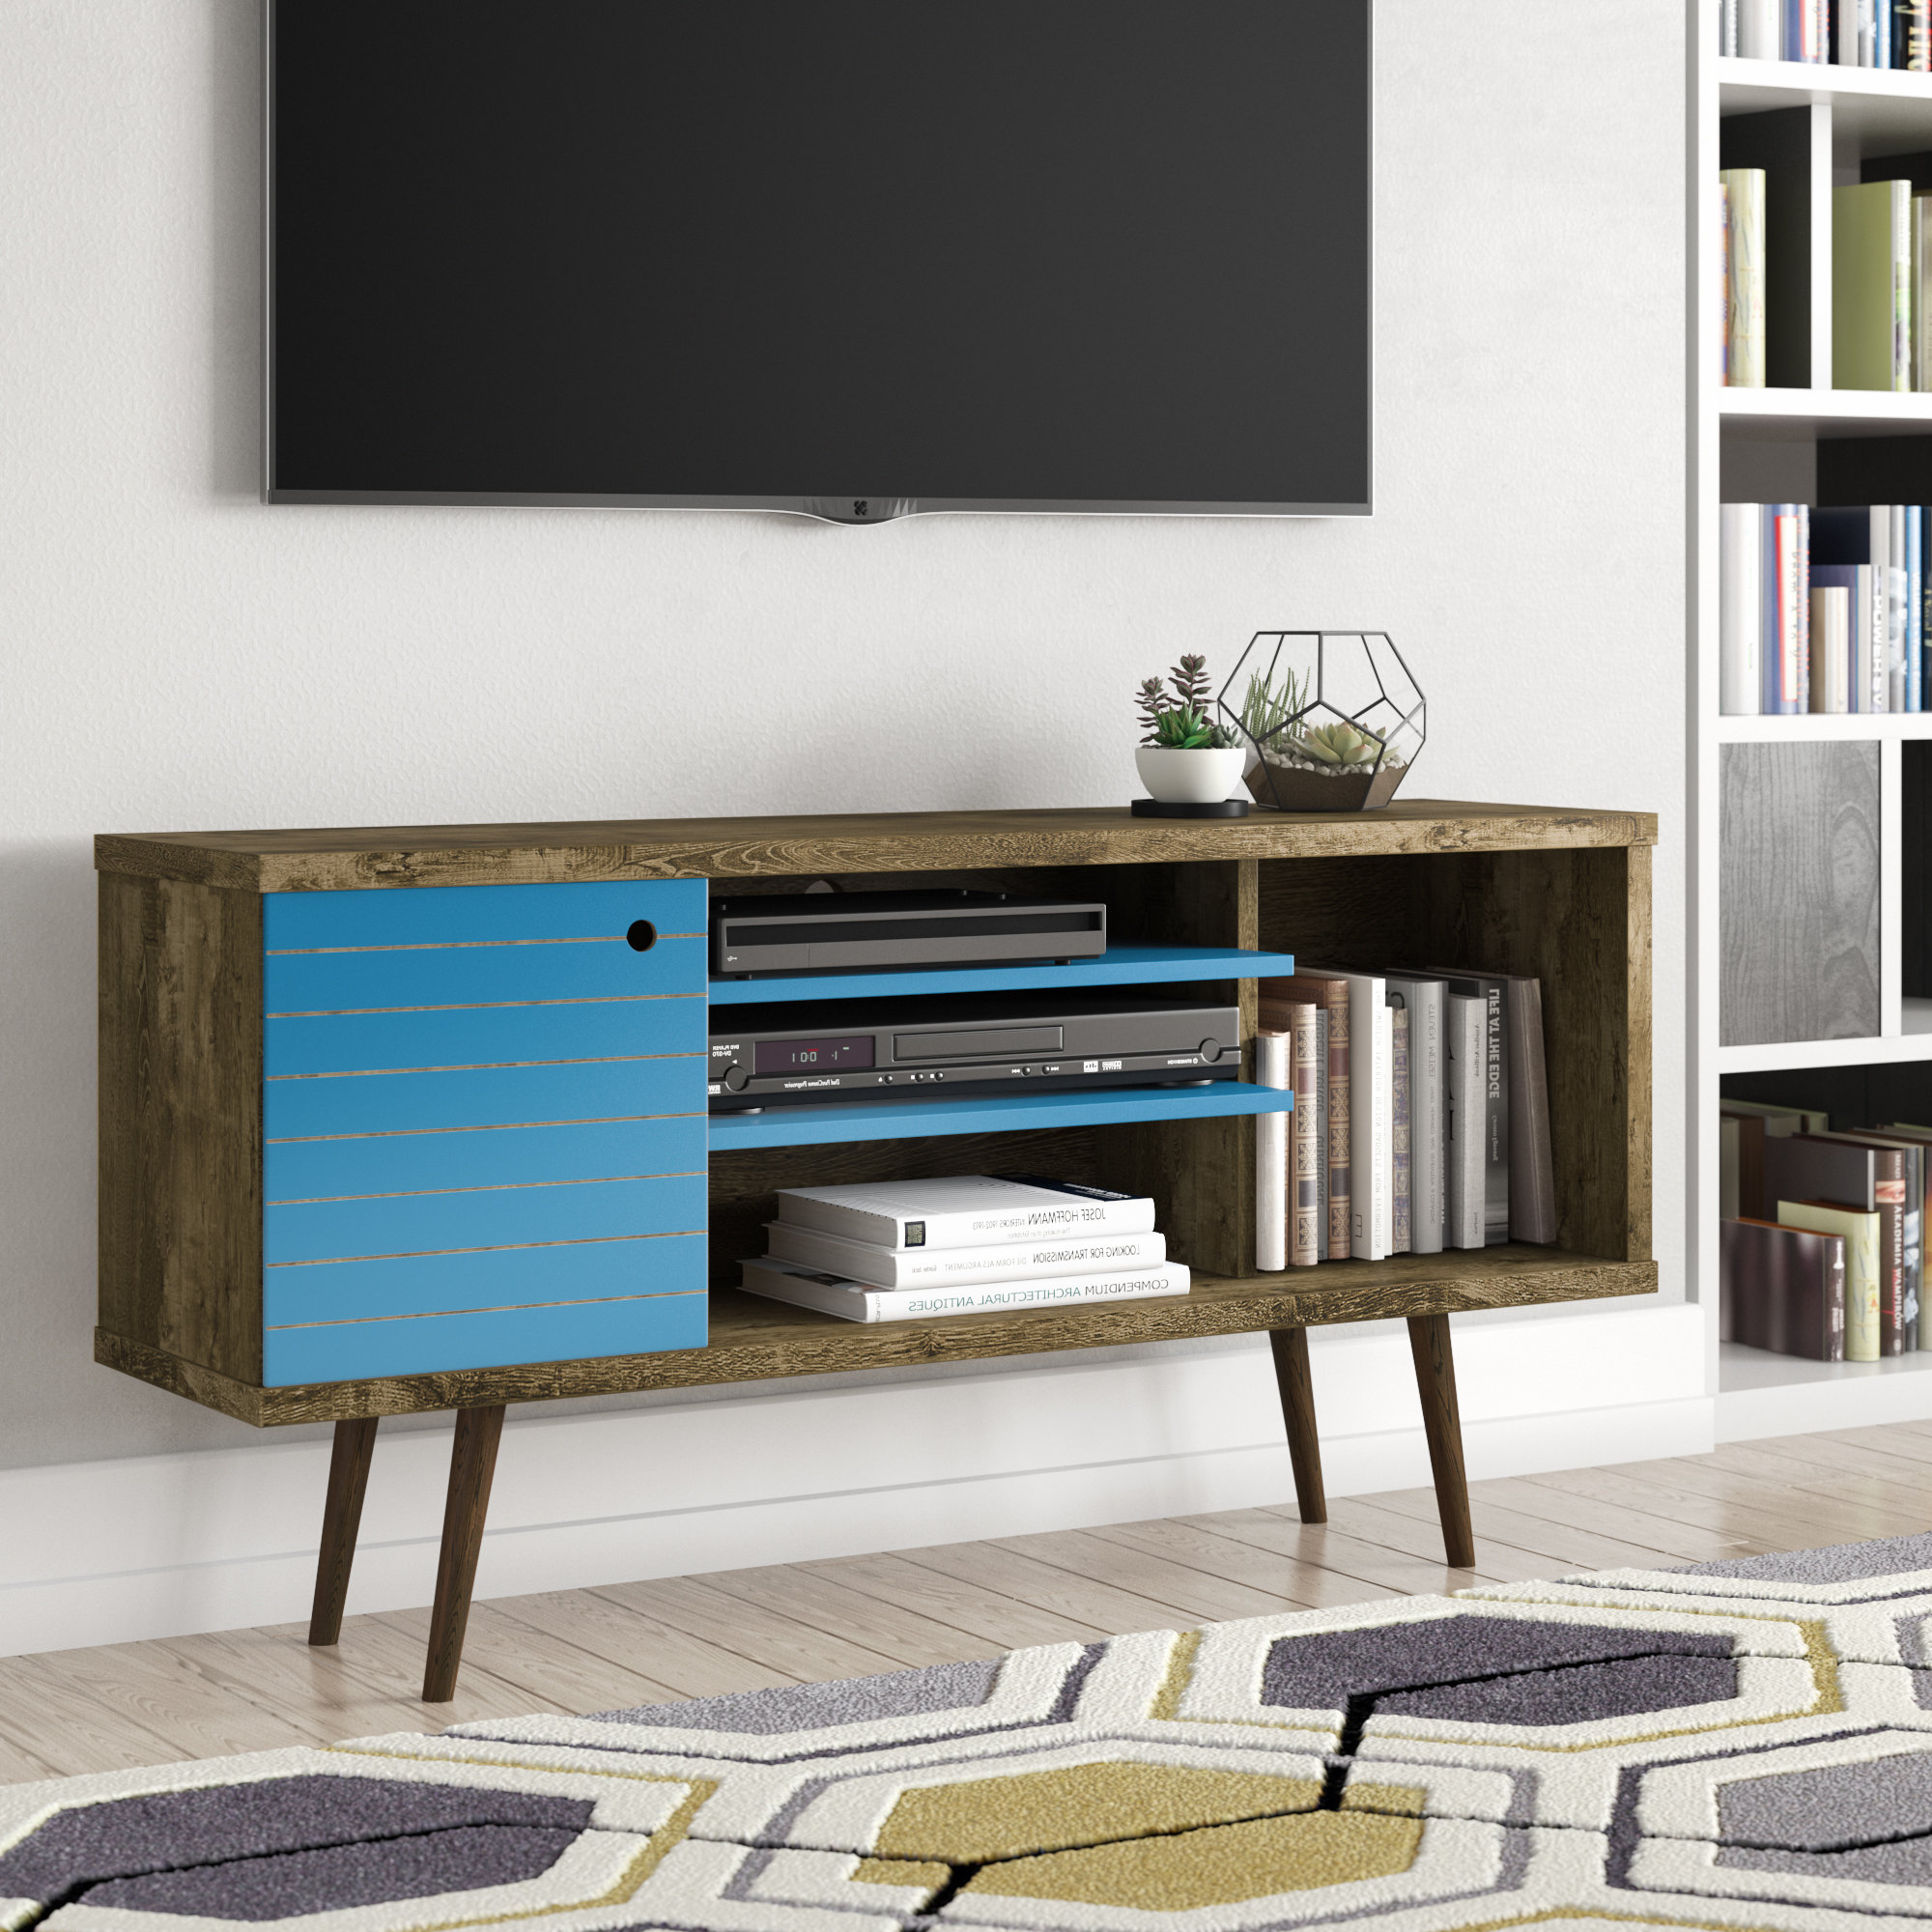 George Oliver Jabari Tv Stand For Tvs Up To 50'' & Reviews | Wayfair With Regard To Century Blue 60 Inch Tv Stands (View 5 of 20)